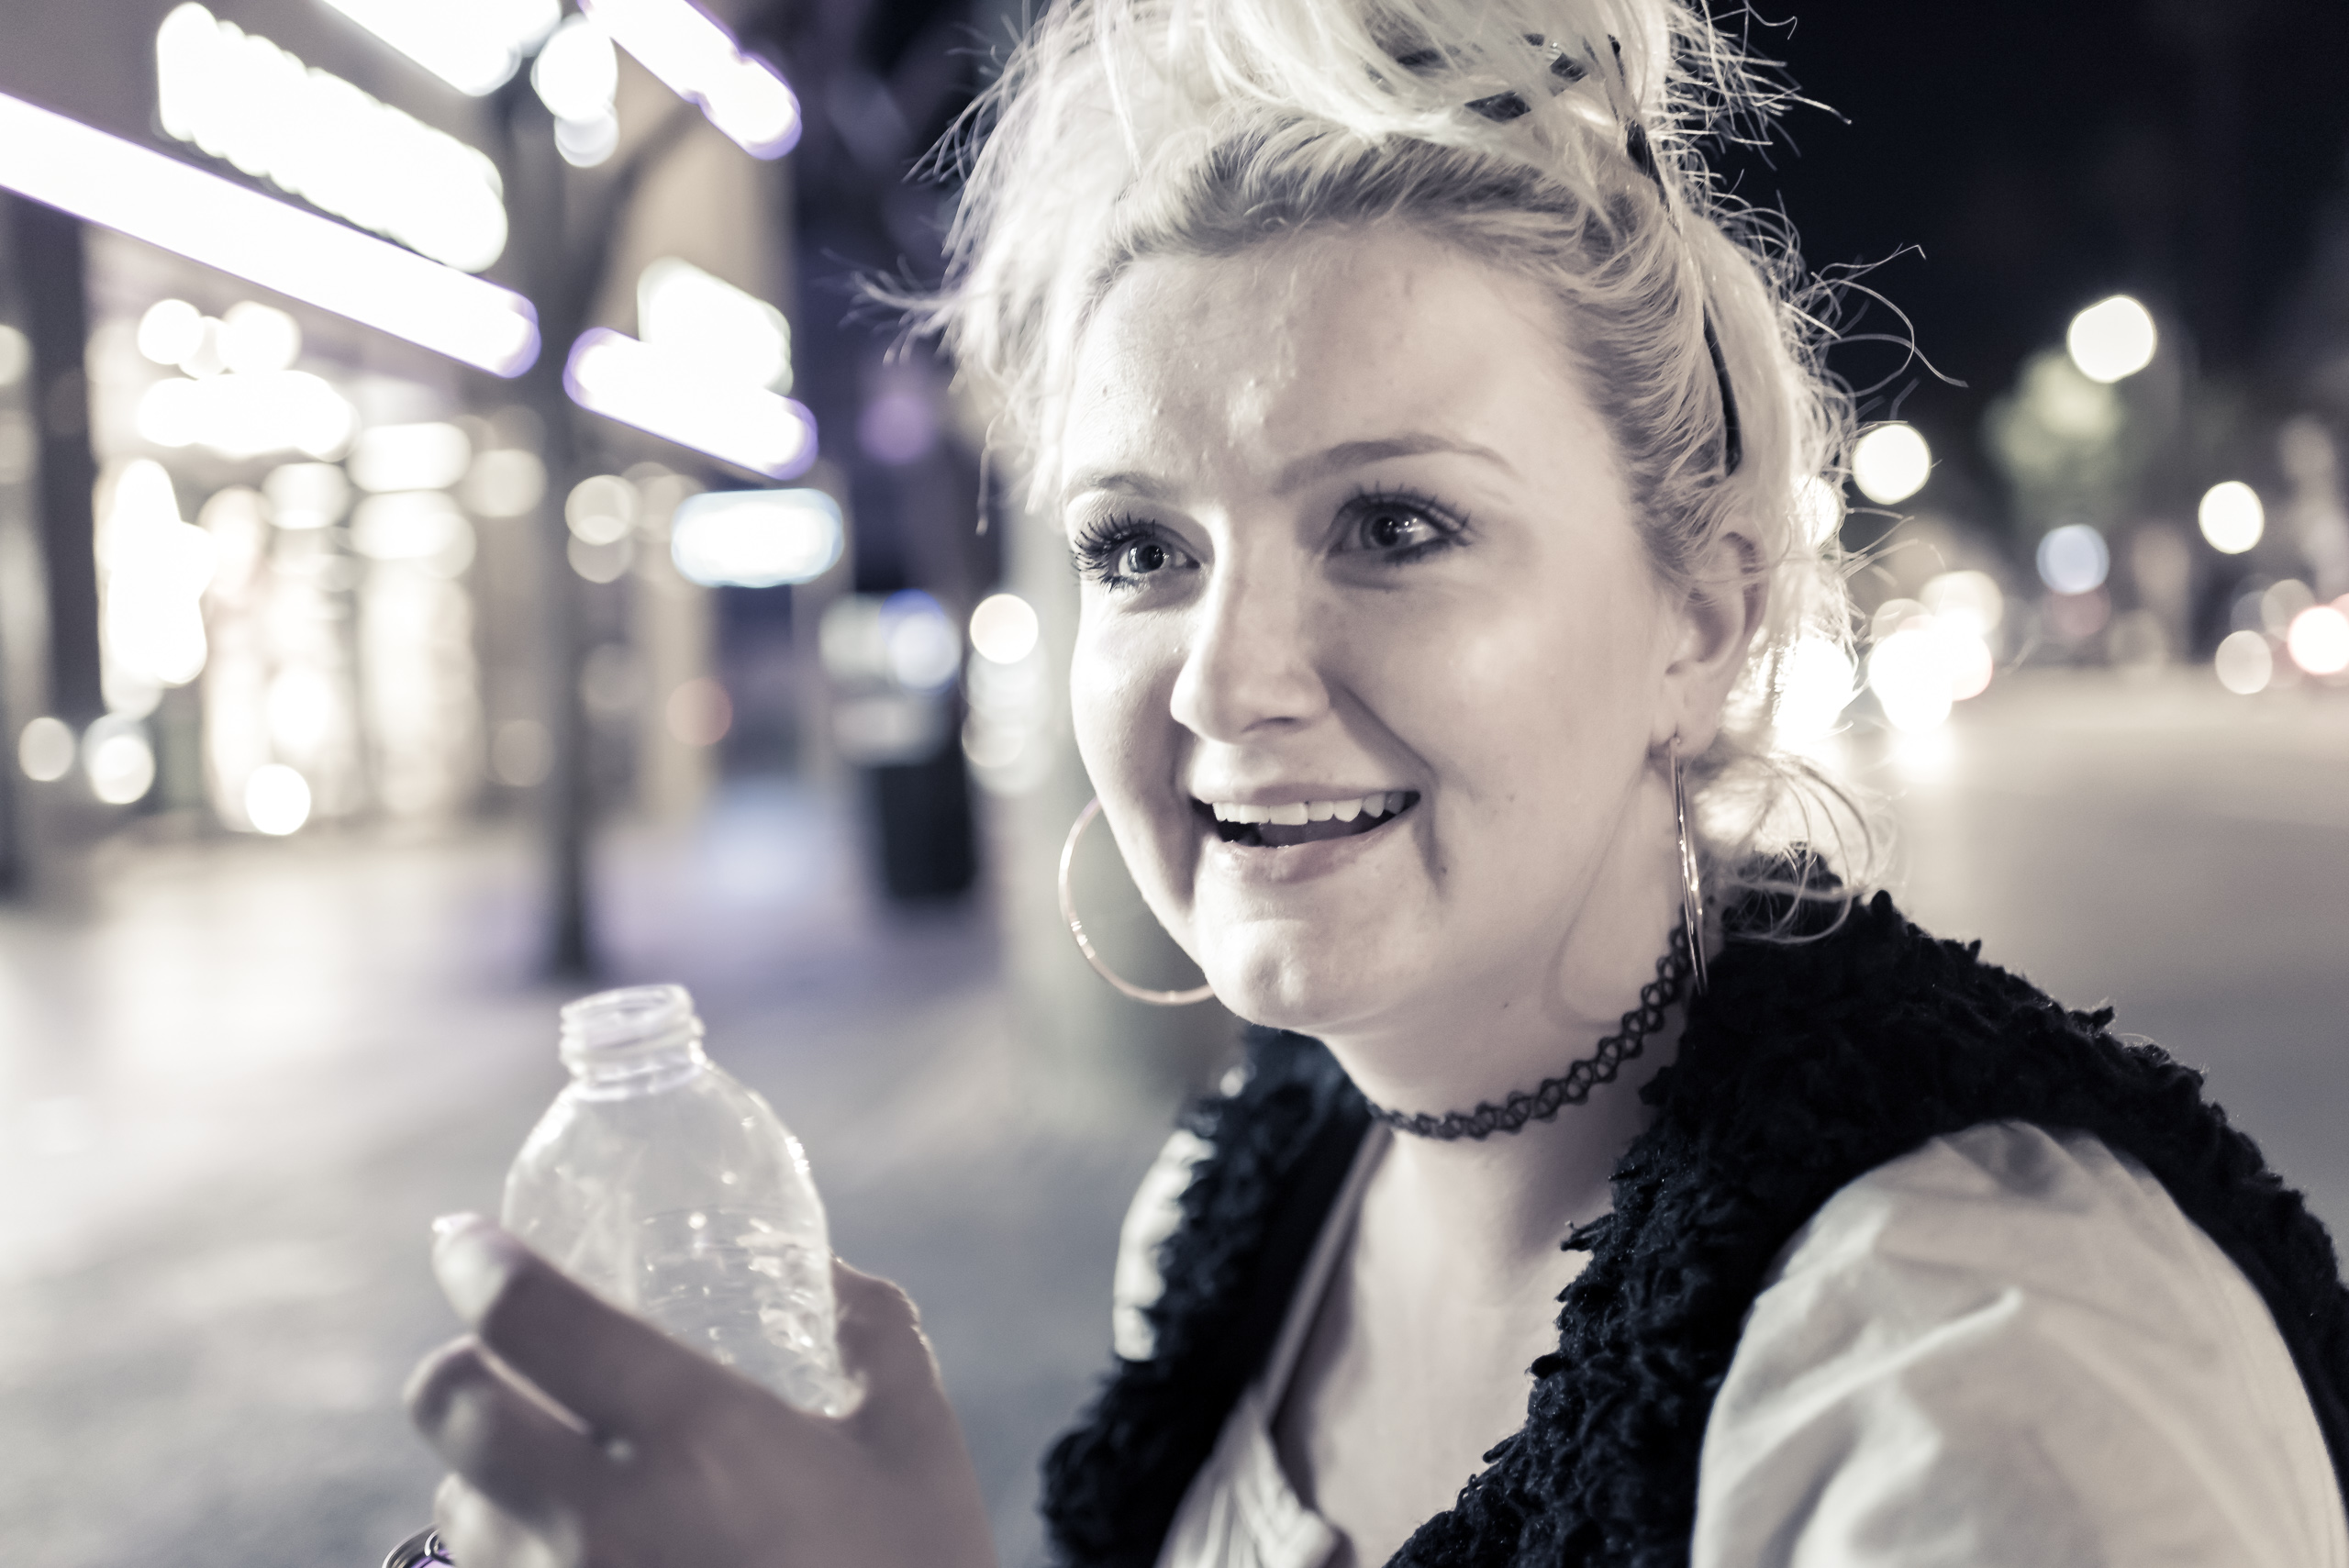 Kristina, sitting on the curb on Hollywood Blvd between Vine & Highland. She drinks a bottle of water, smokes a cigarette, and looks out, smiling and thinking